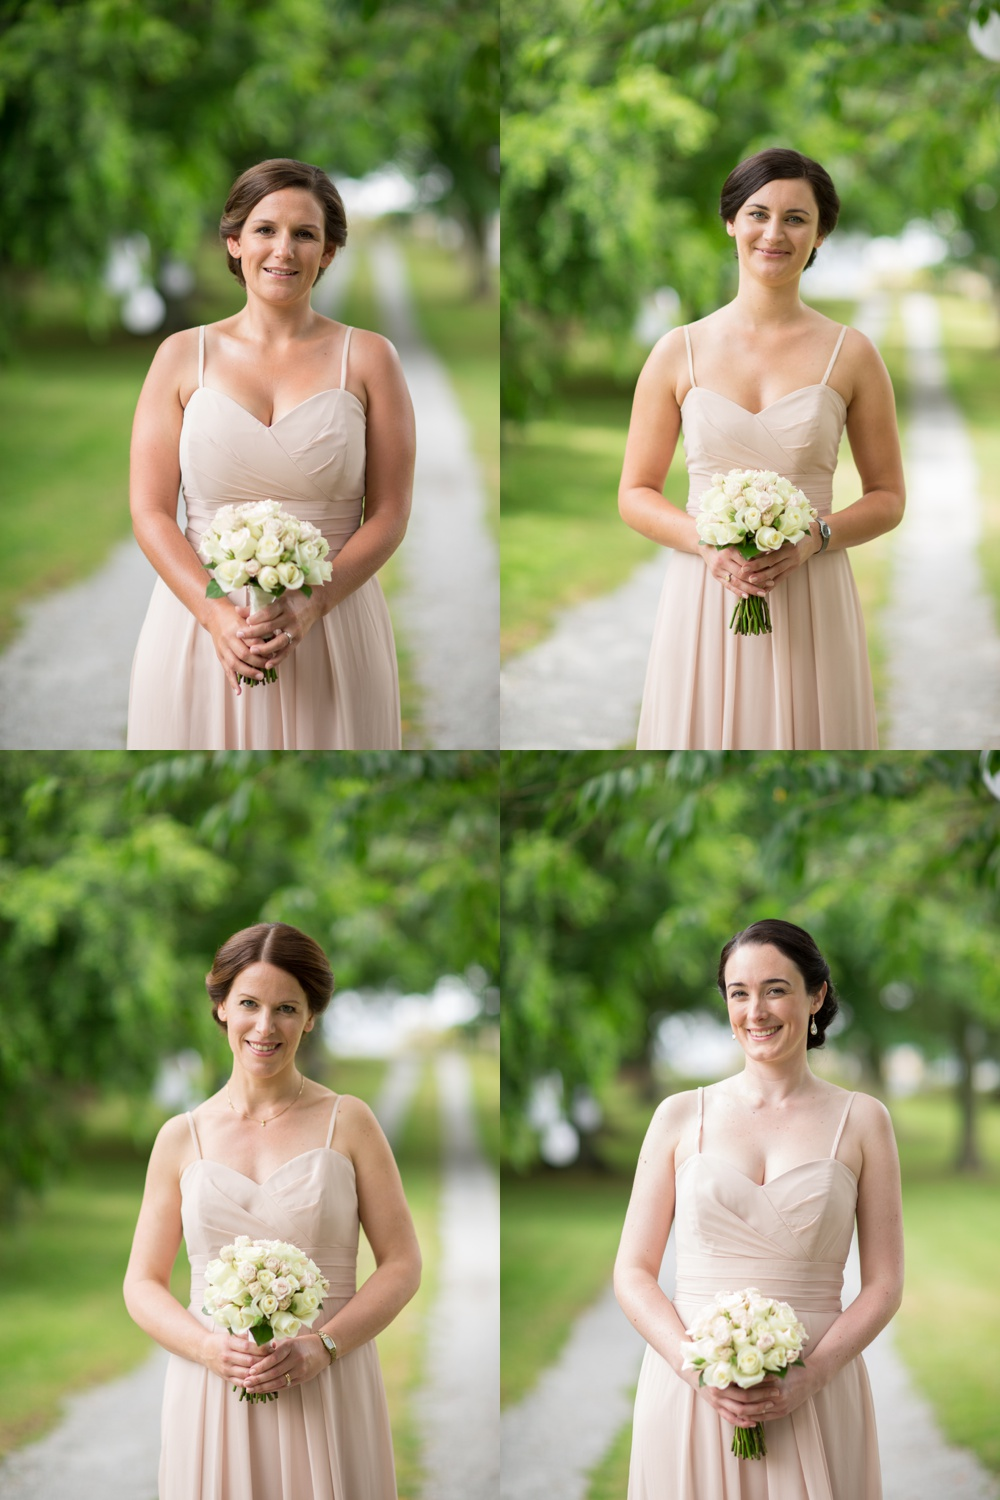 Taupo_wedding_photographer_014.jpg